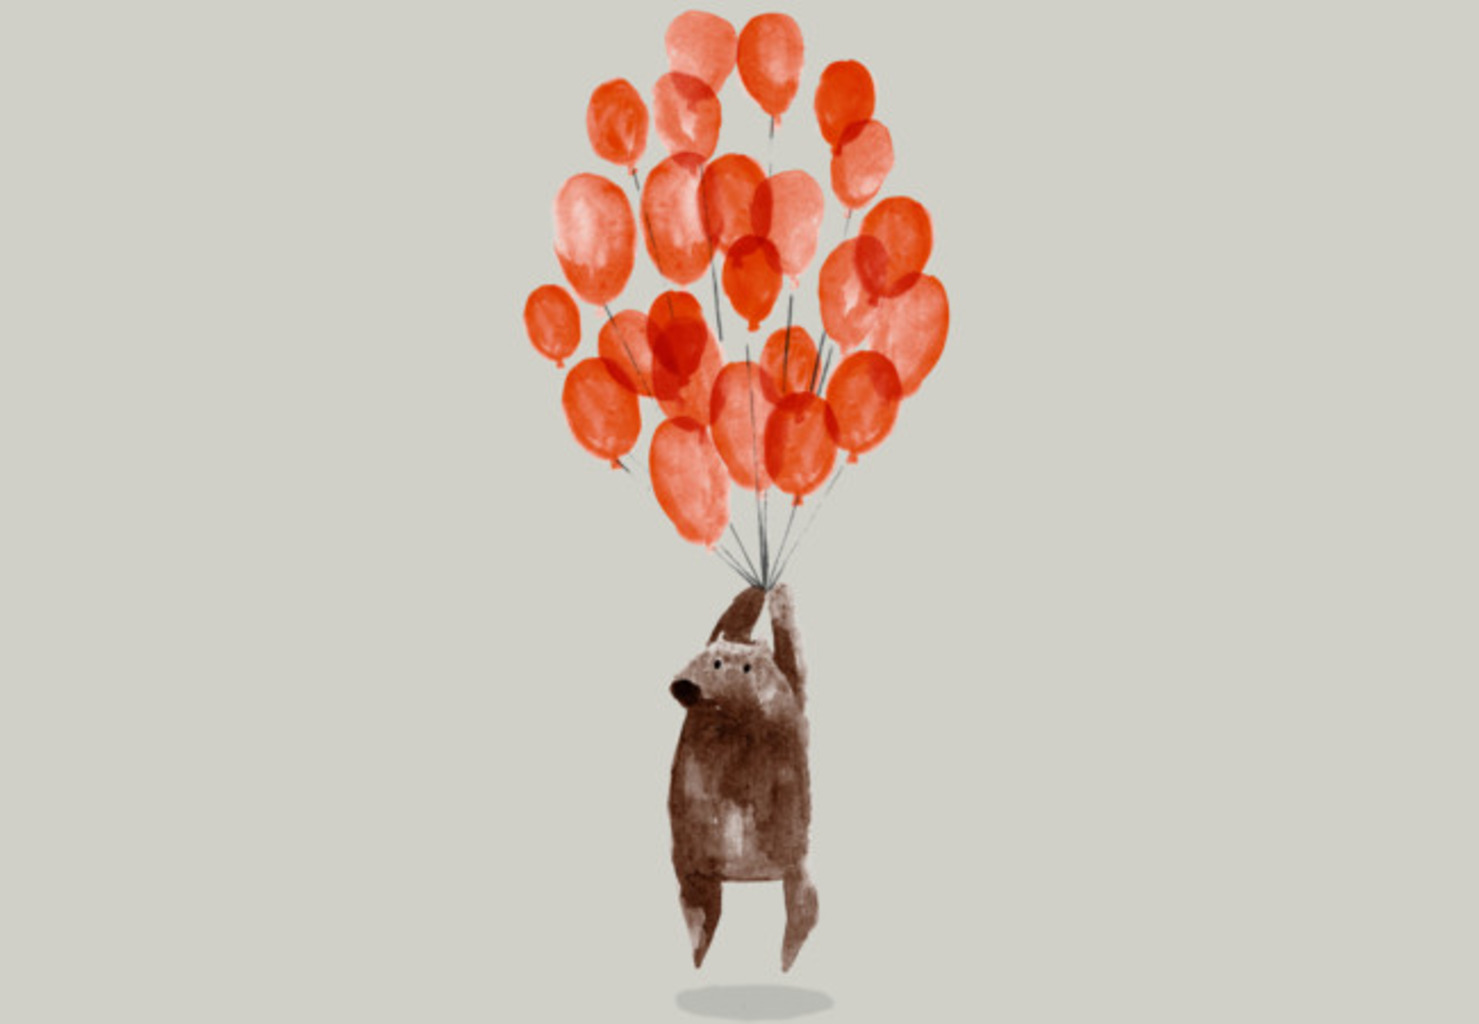 Design by Humans: Bear with balloons